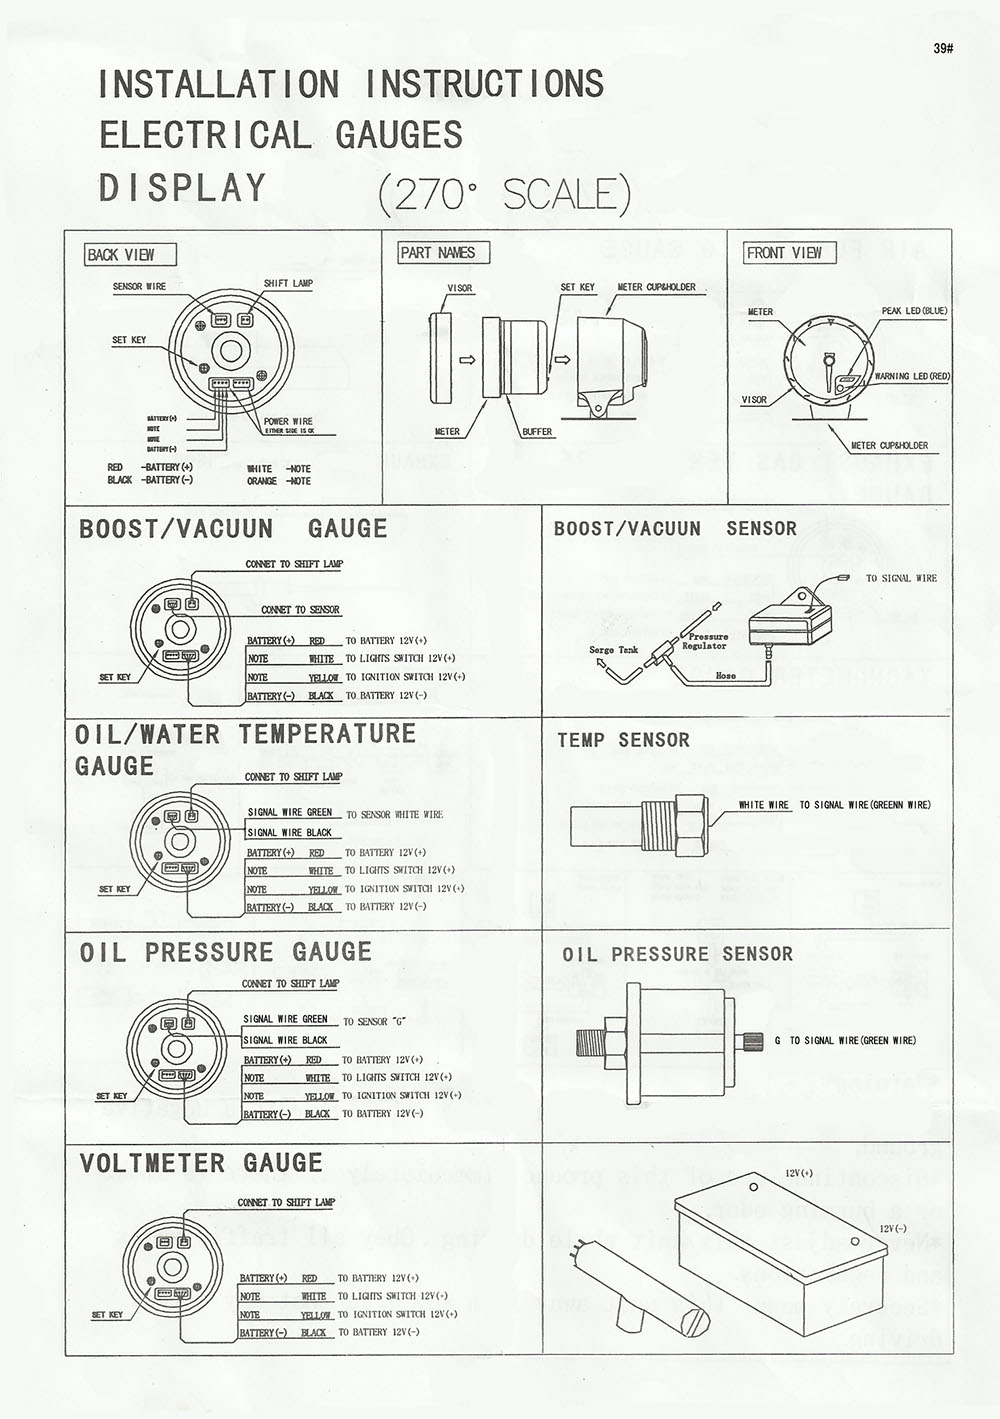 Oil Temperature Gauge Wiring Diagram How To Install An Oil Pressure